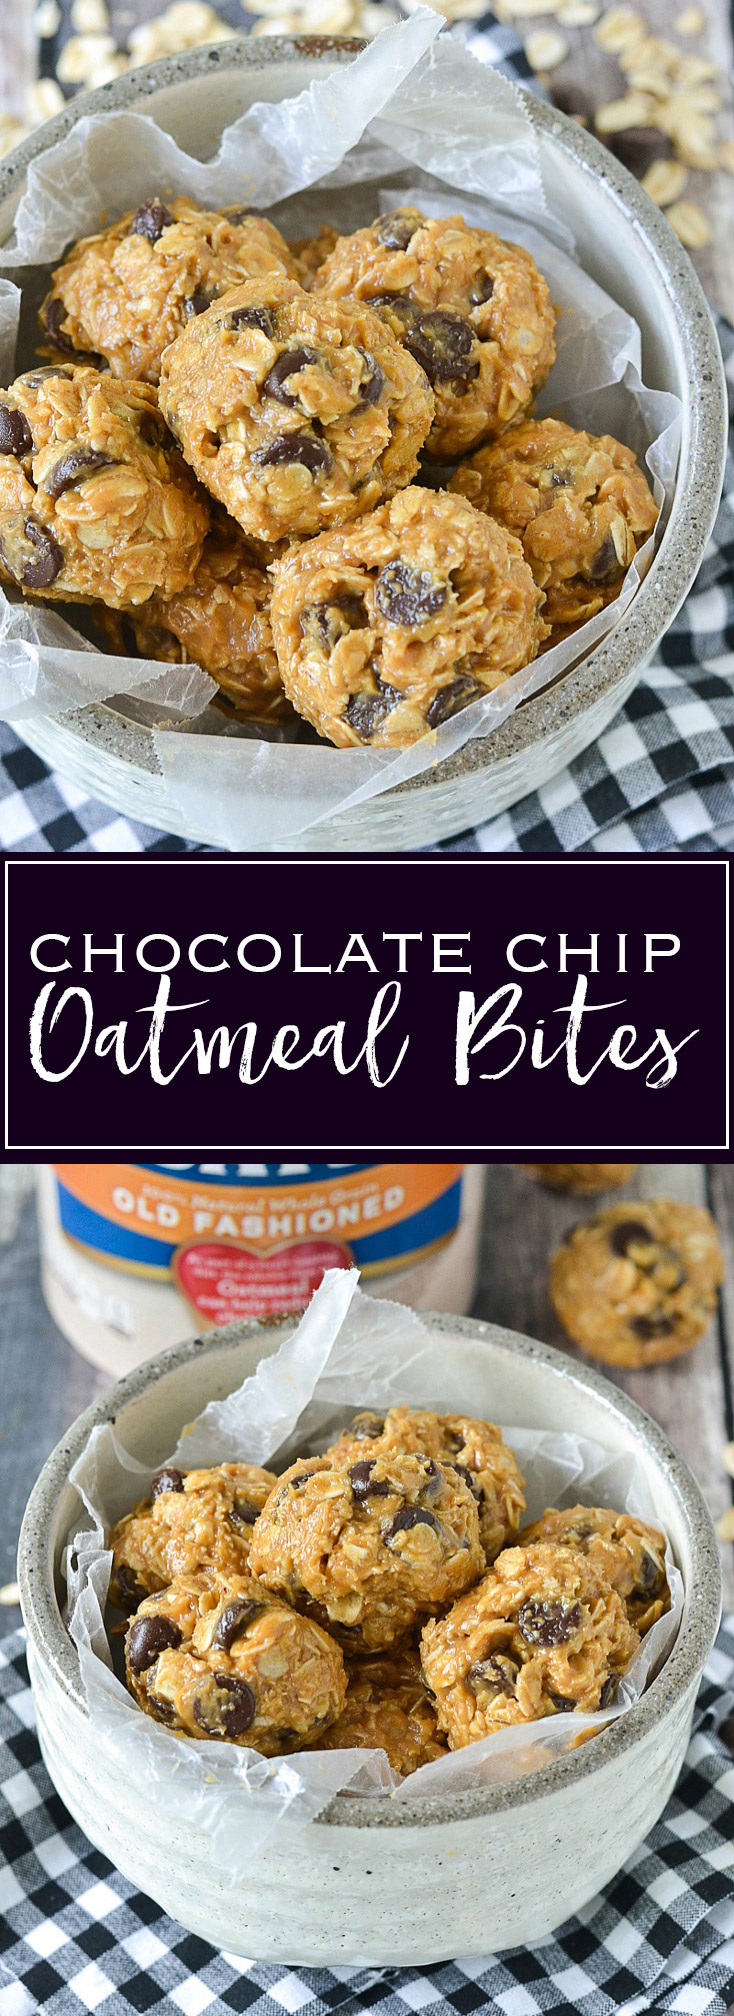 Chocolate Chip Oatmeal Bites | www.motherthyme.com